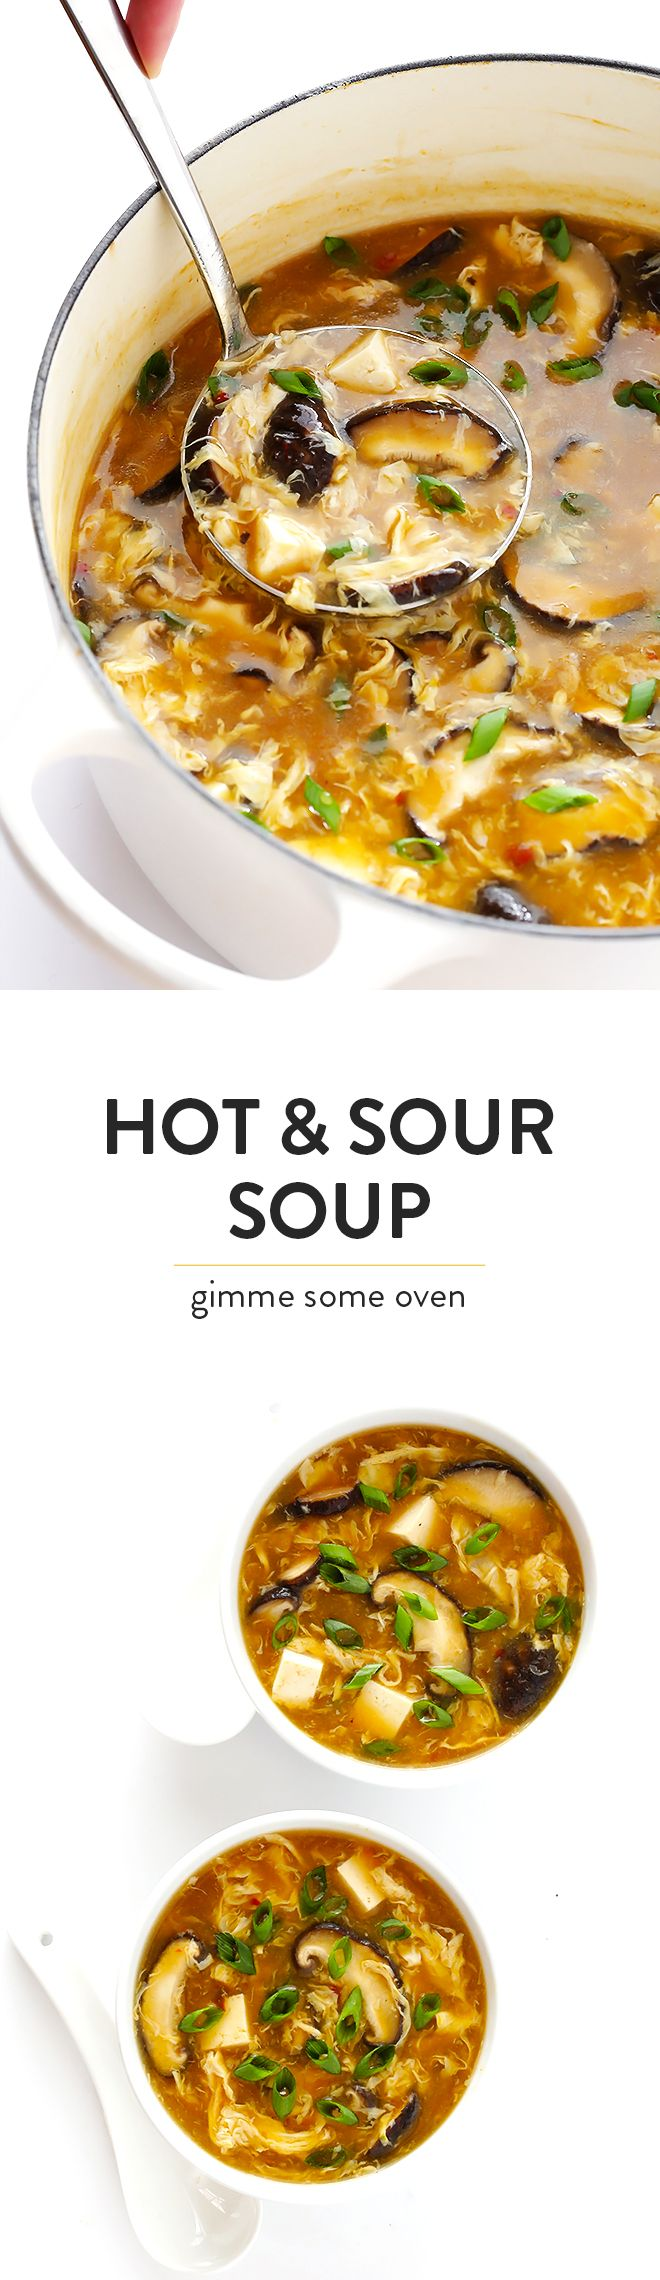 This Hot and Sour Soup recipe is quick and easy to make, SO tasty and flavorful, and tastes just like the Chinese restaurant version! | http://gimmesomeoven.com